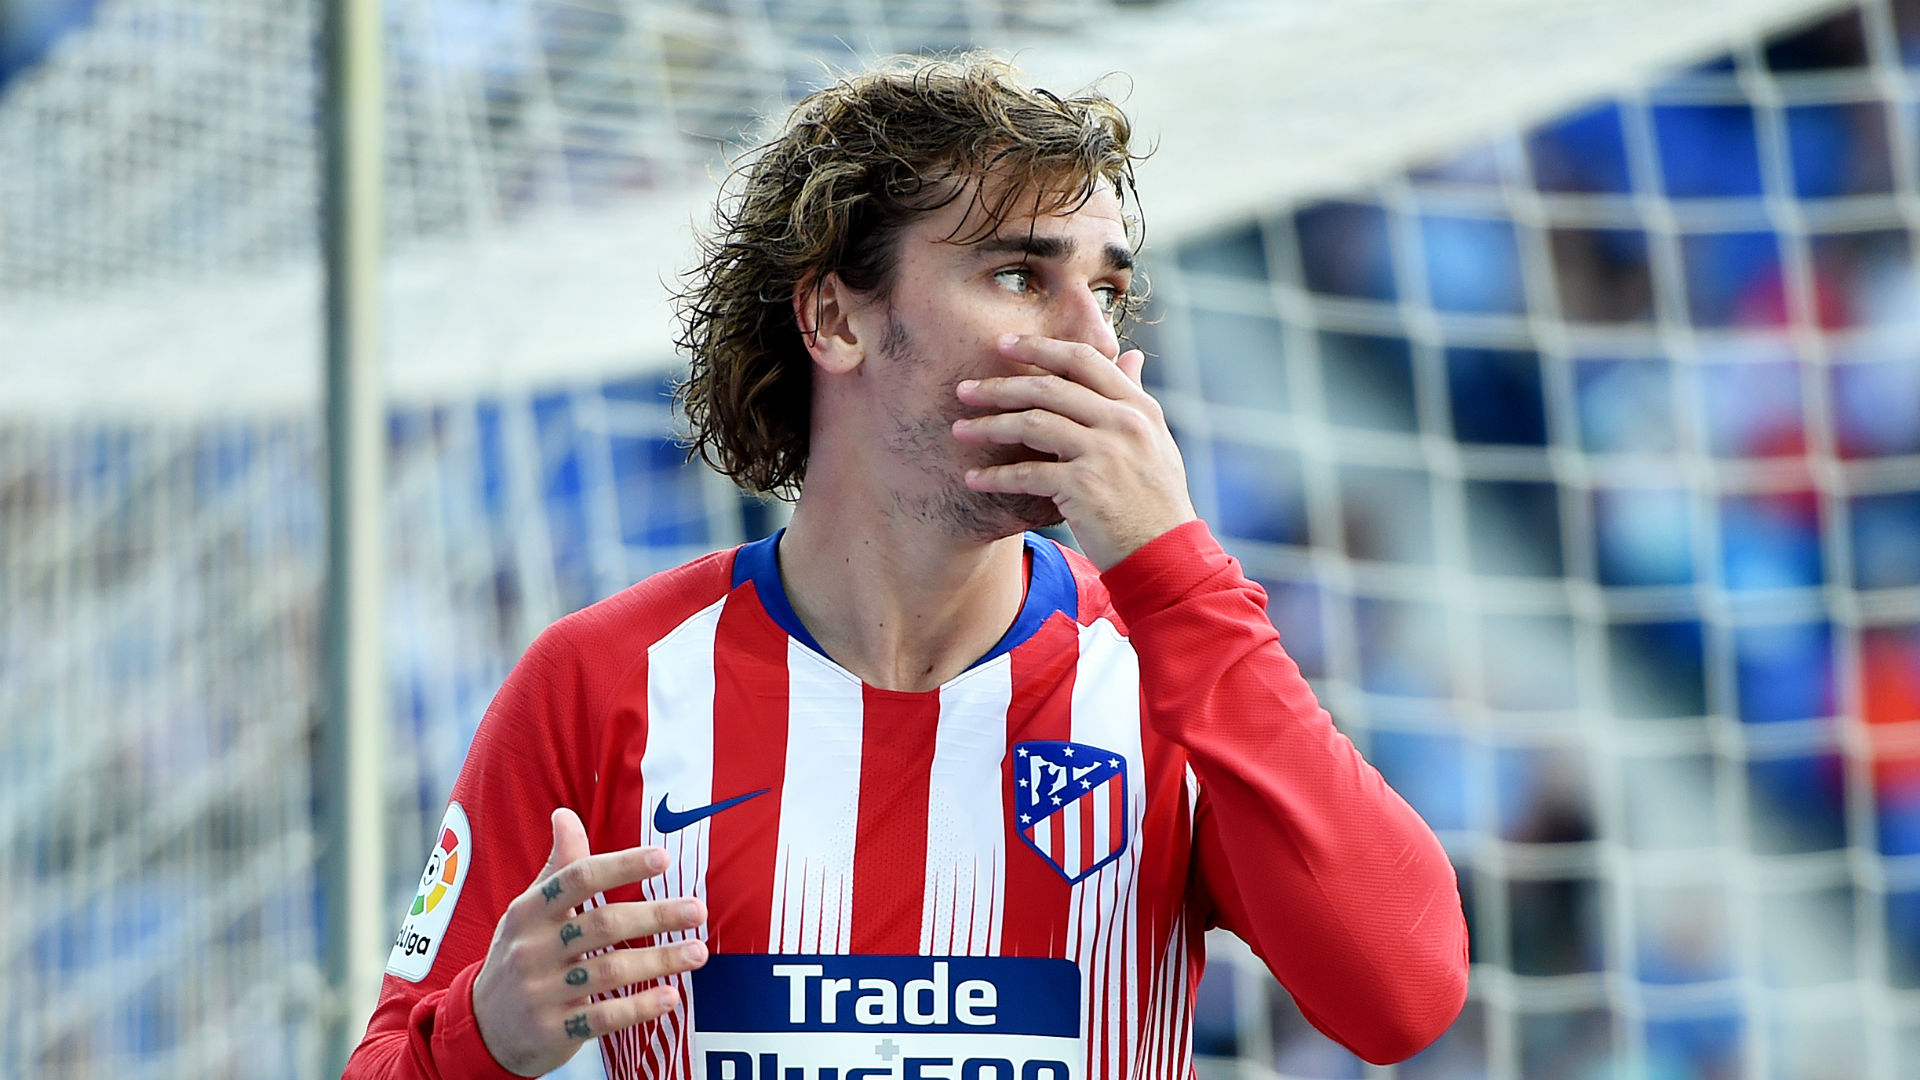 Griezmann to Barcelona: Another saga to take the shine off 'Mes que un club'